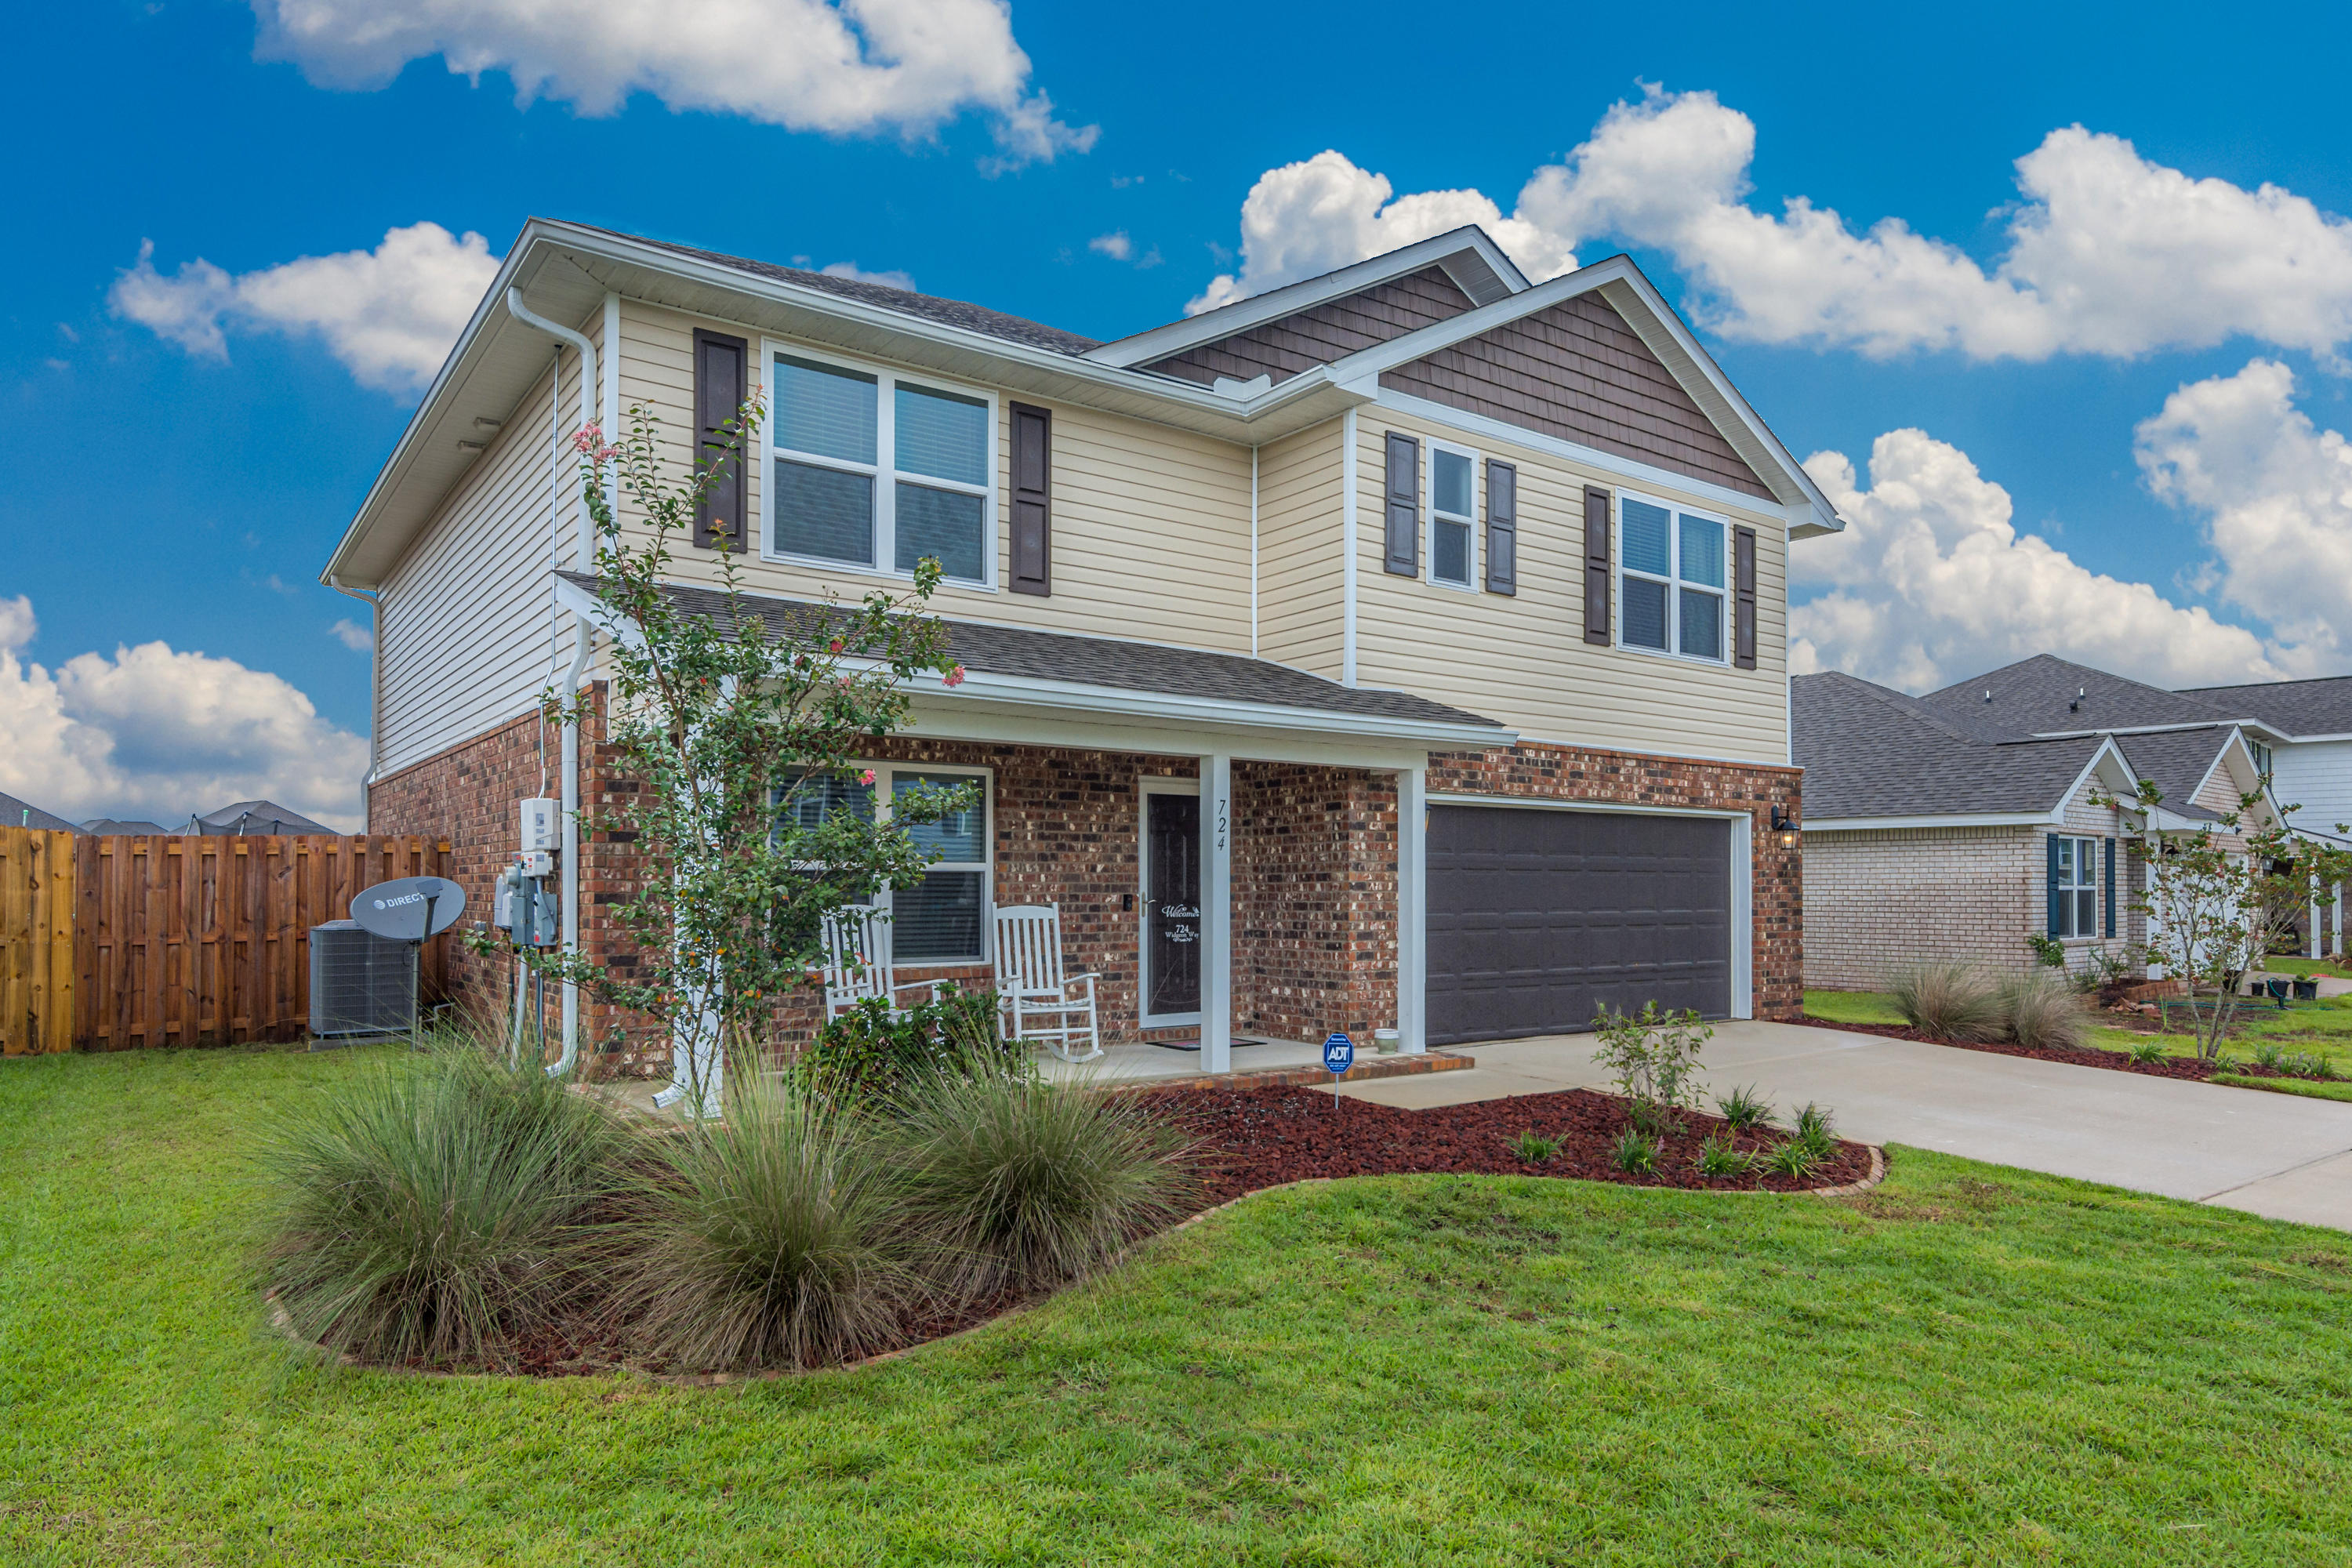 Photo of home for sale at 724 Widgeon, Crestview FL